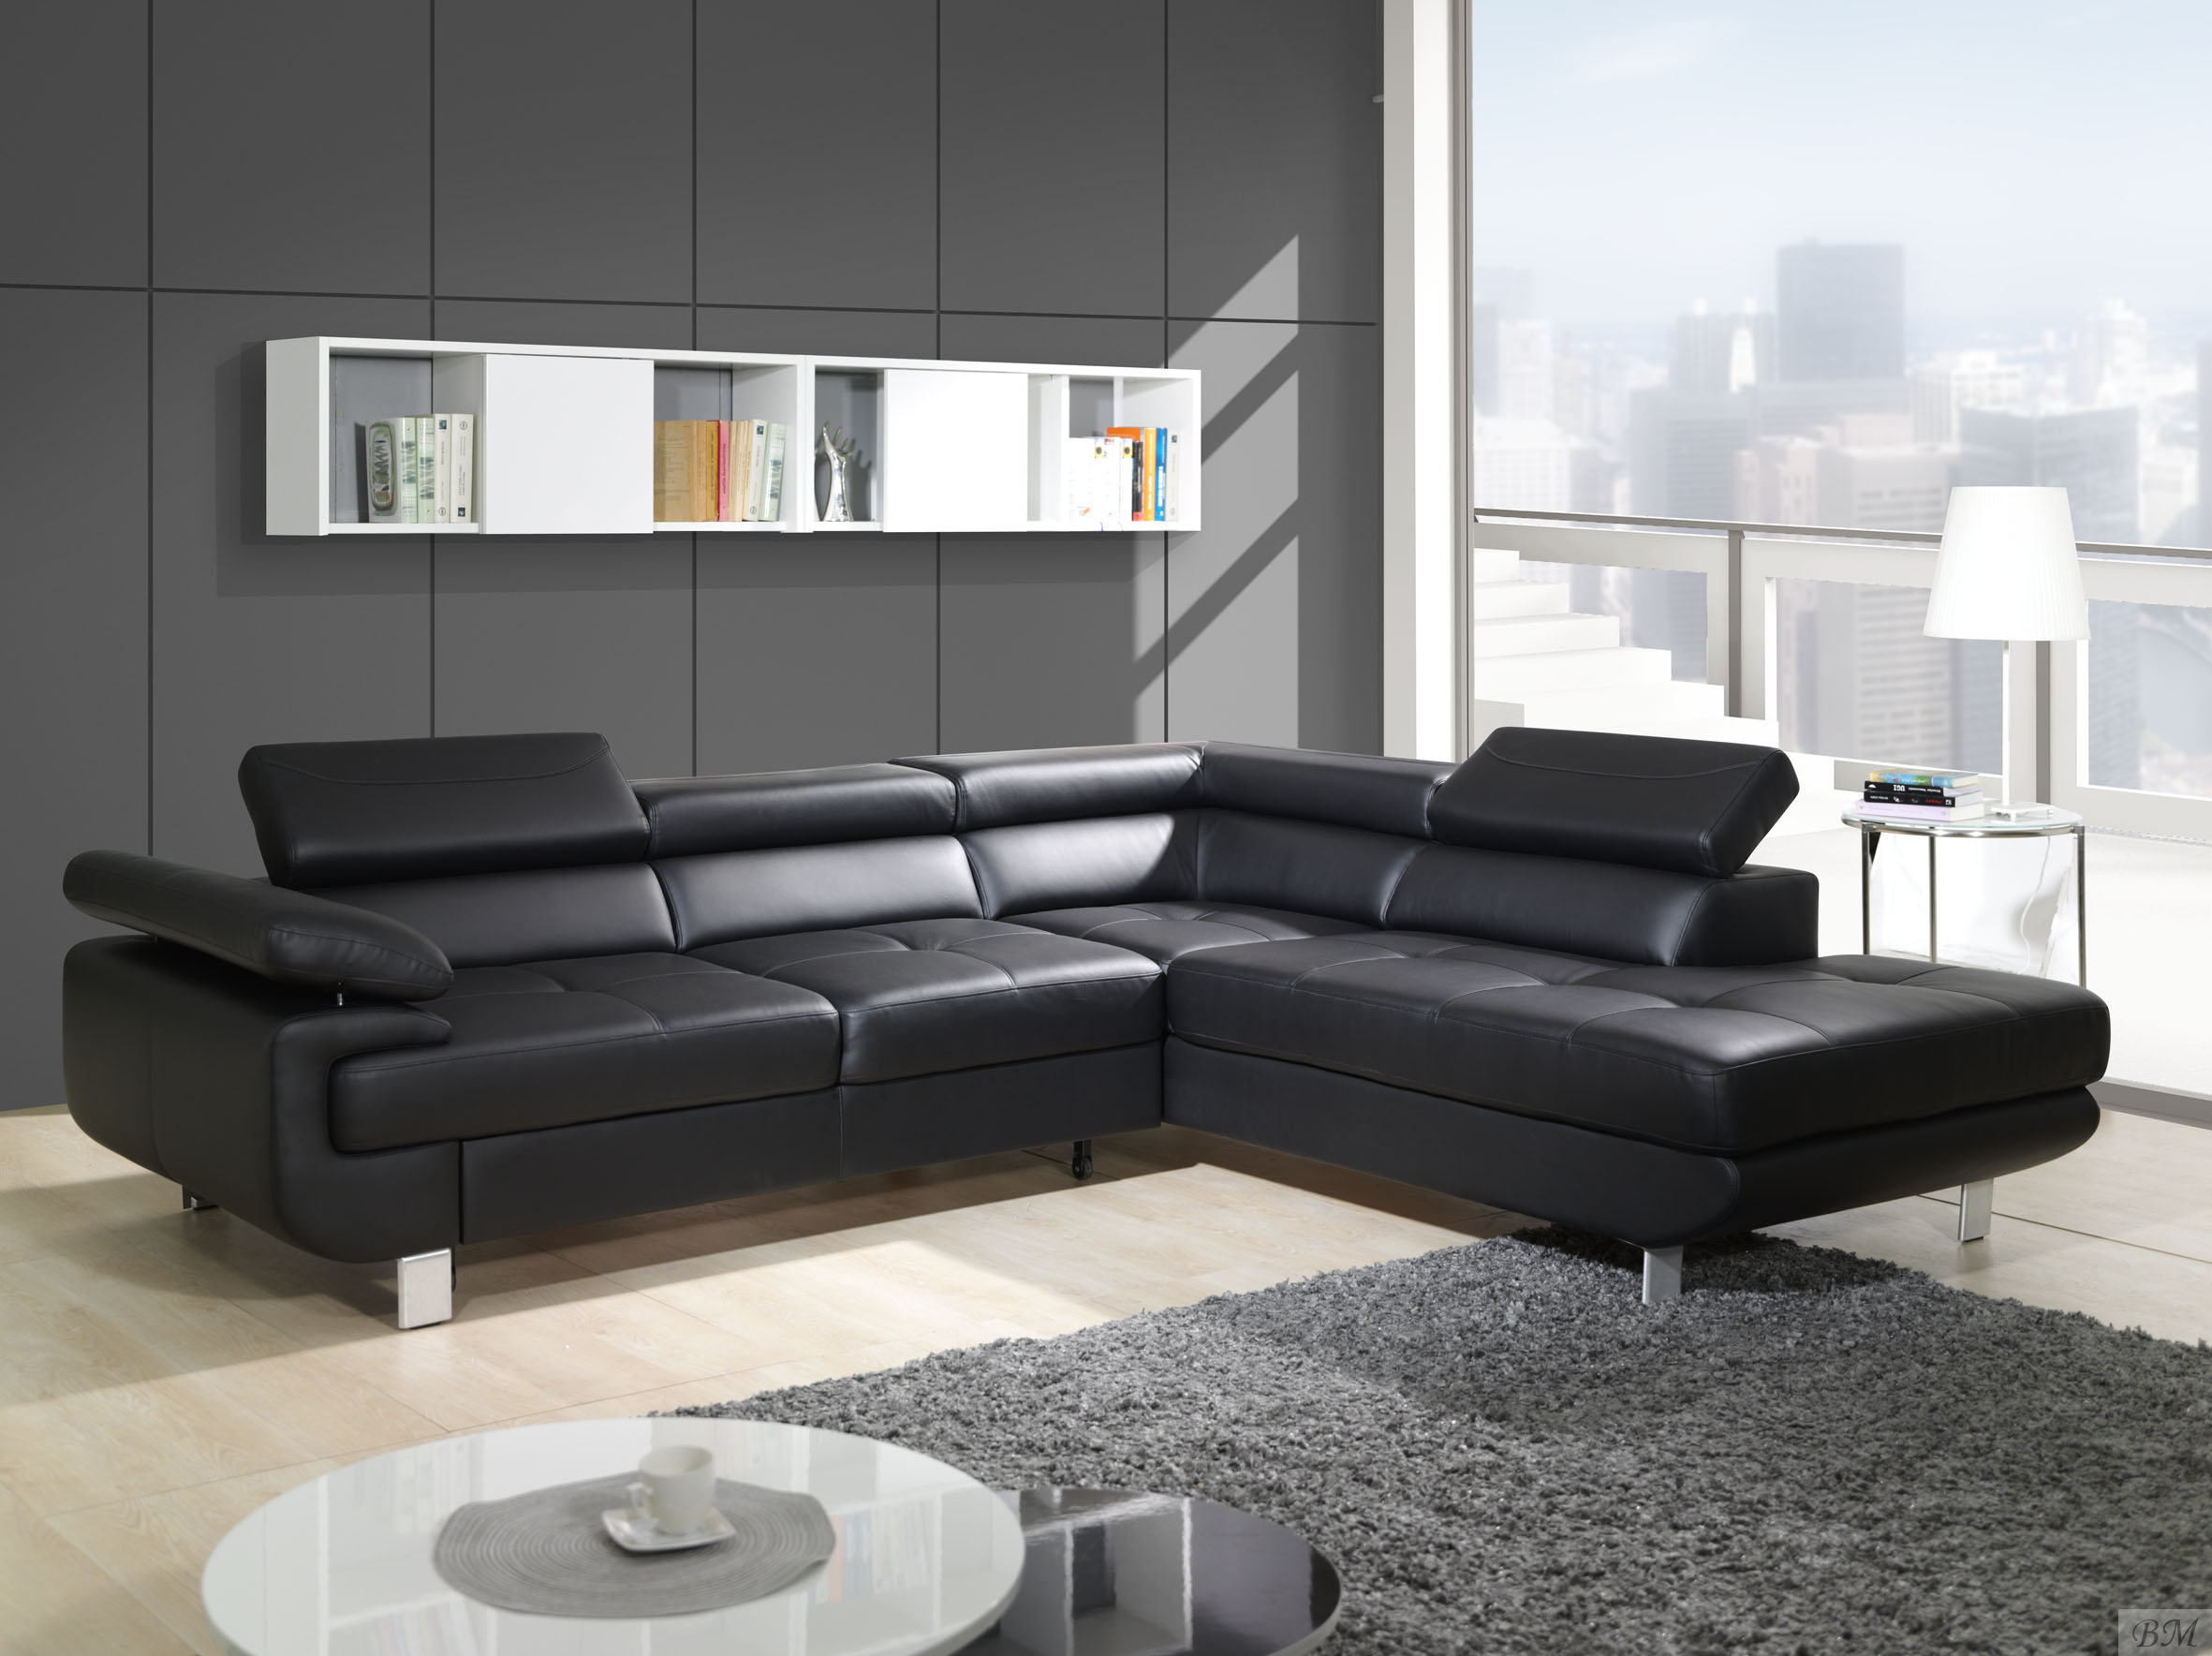 Natuzzi Corner Sofa Uk Natuzzi sofa clearance and leather sofas